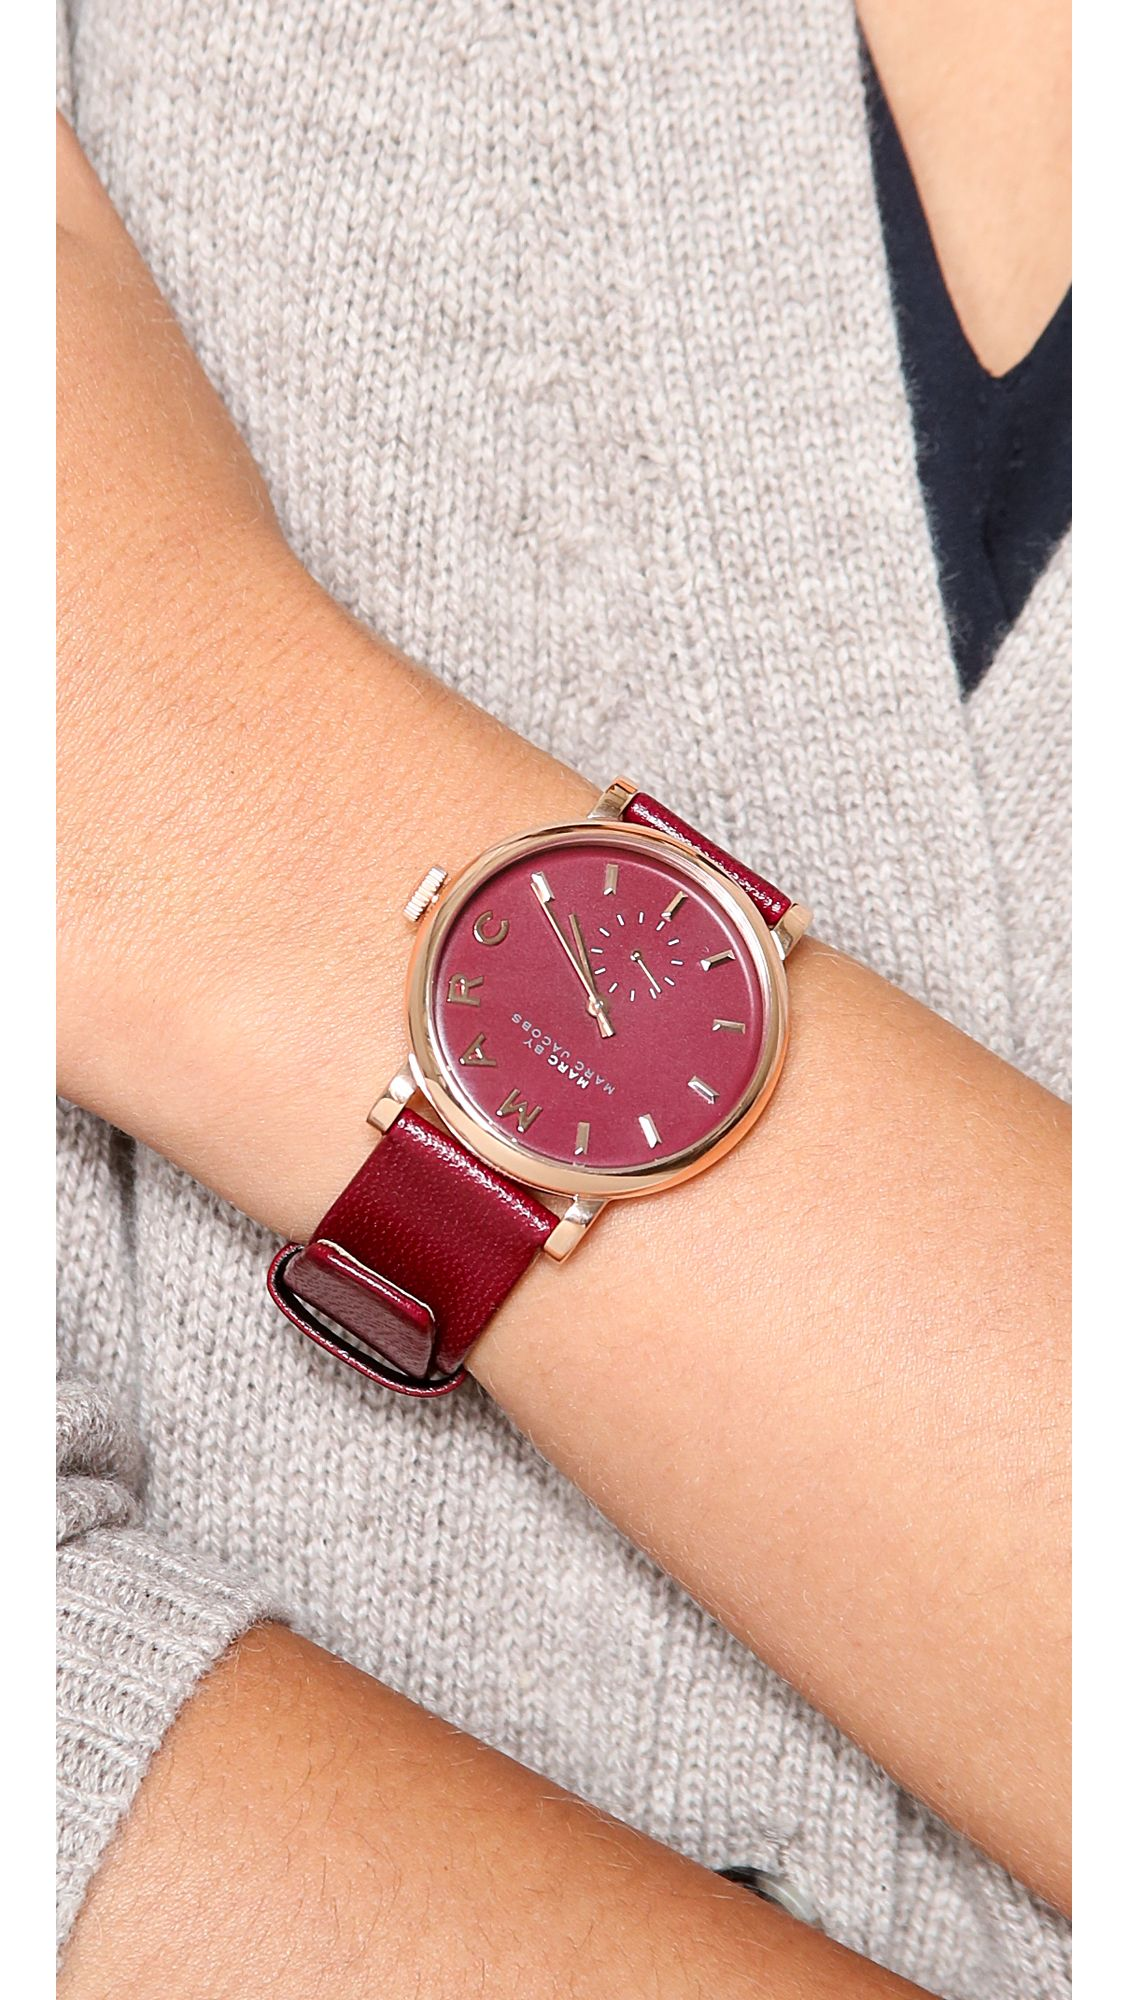 johannesburg gauteng fashion central mens raymond and weil jewellery watch maroon mail clothing beauty watches junk